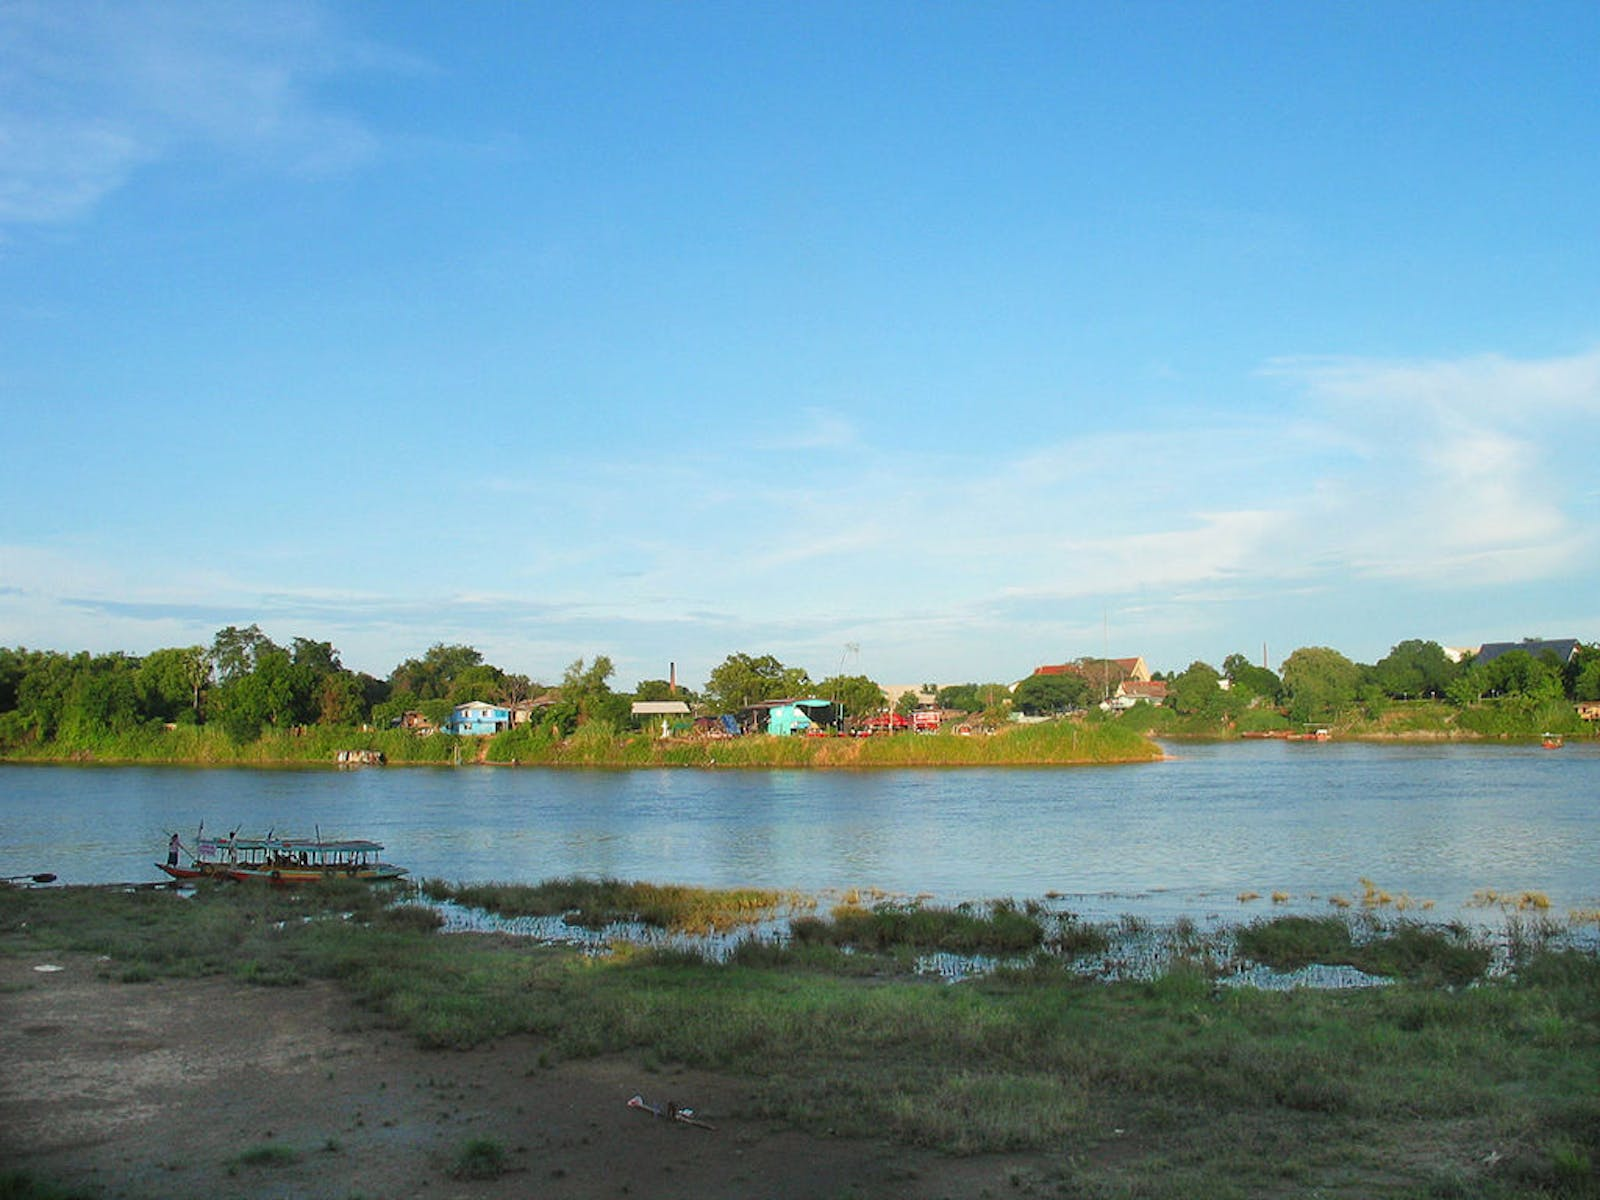 Chao Phraya Freshwater Swamp Forests